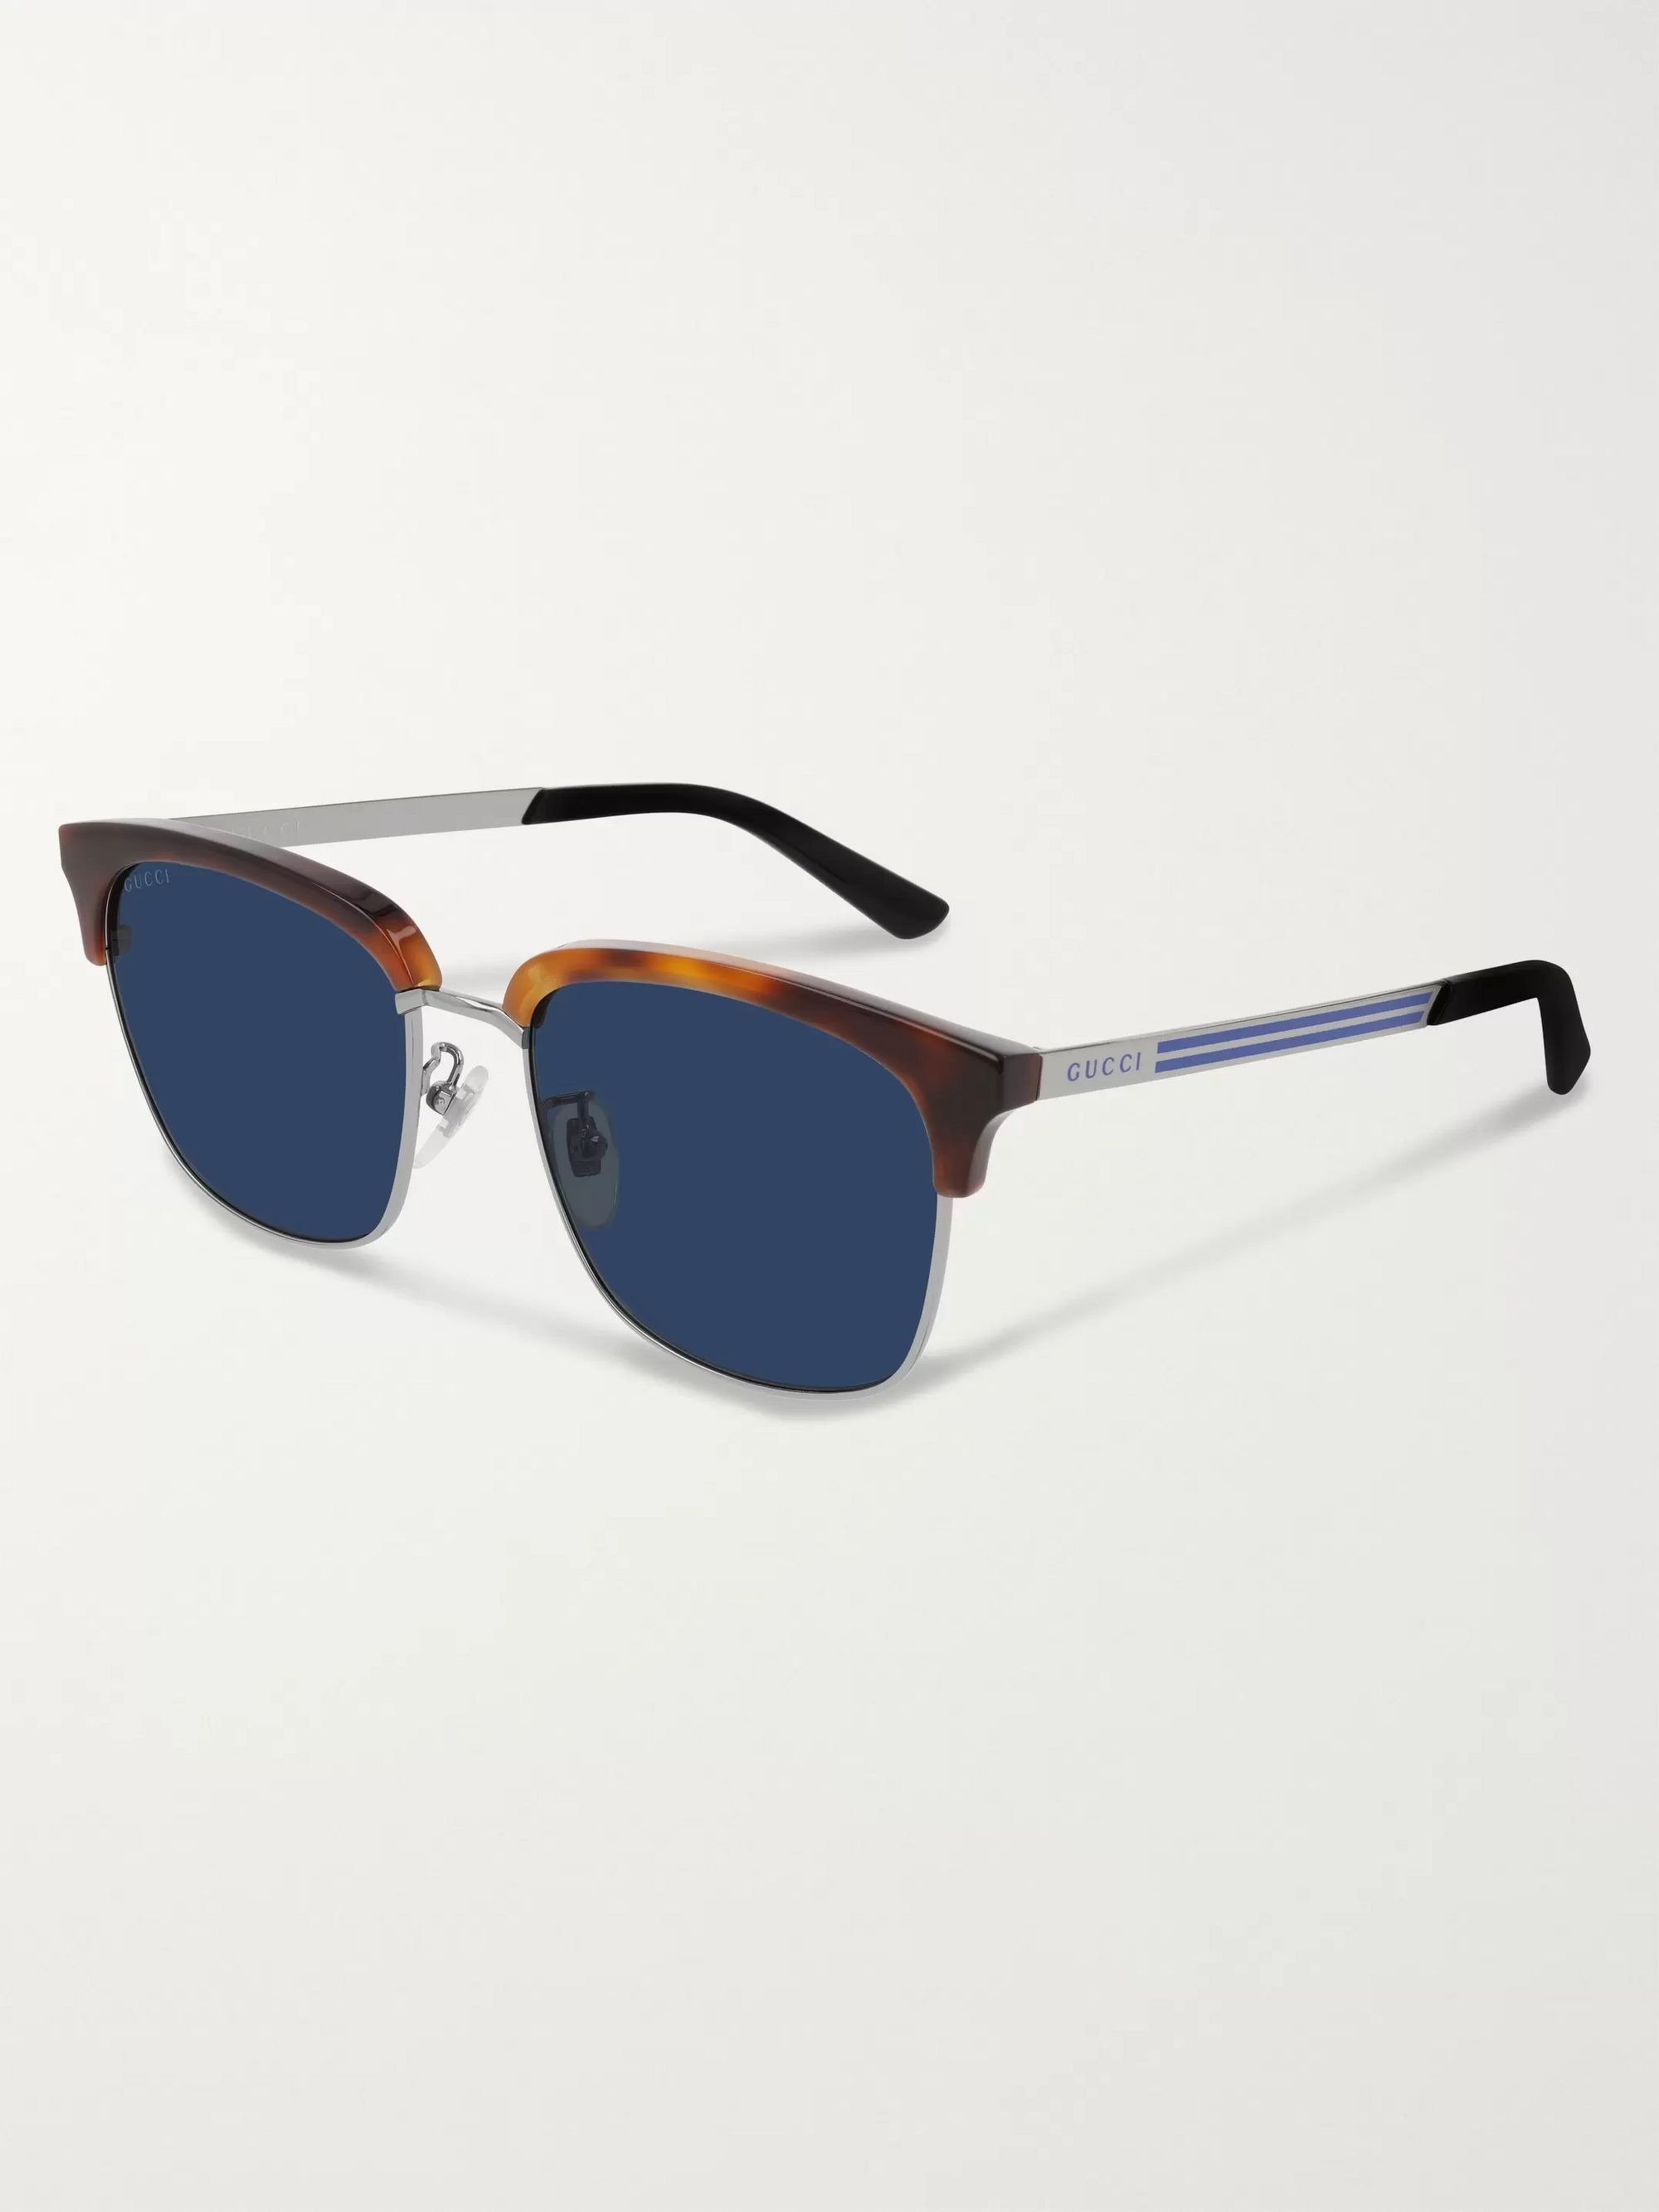 Gucci D-Frame Tortoiseshell Acetate and Silver-Tone Sunglasses